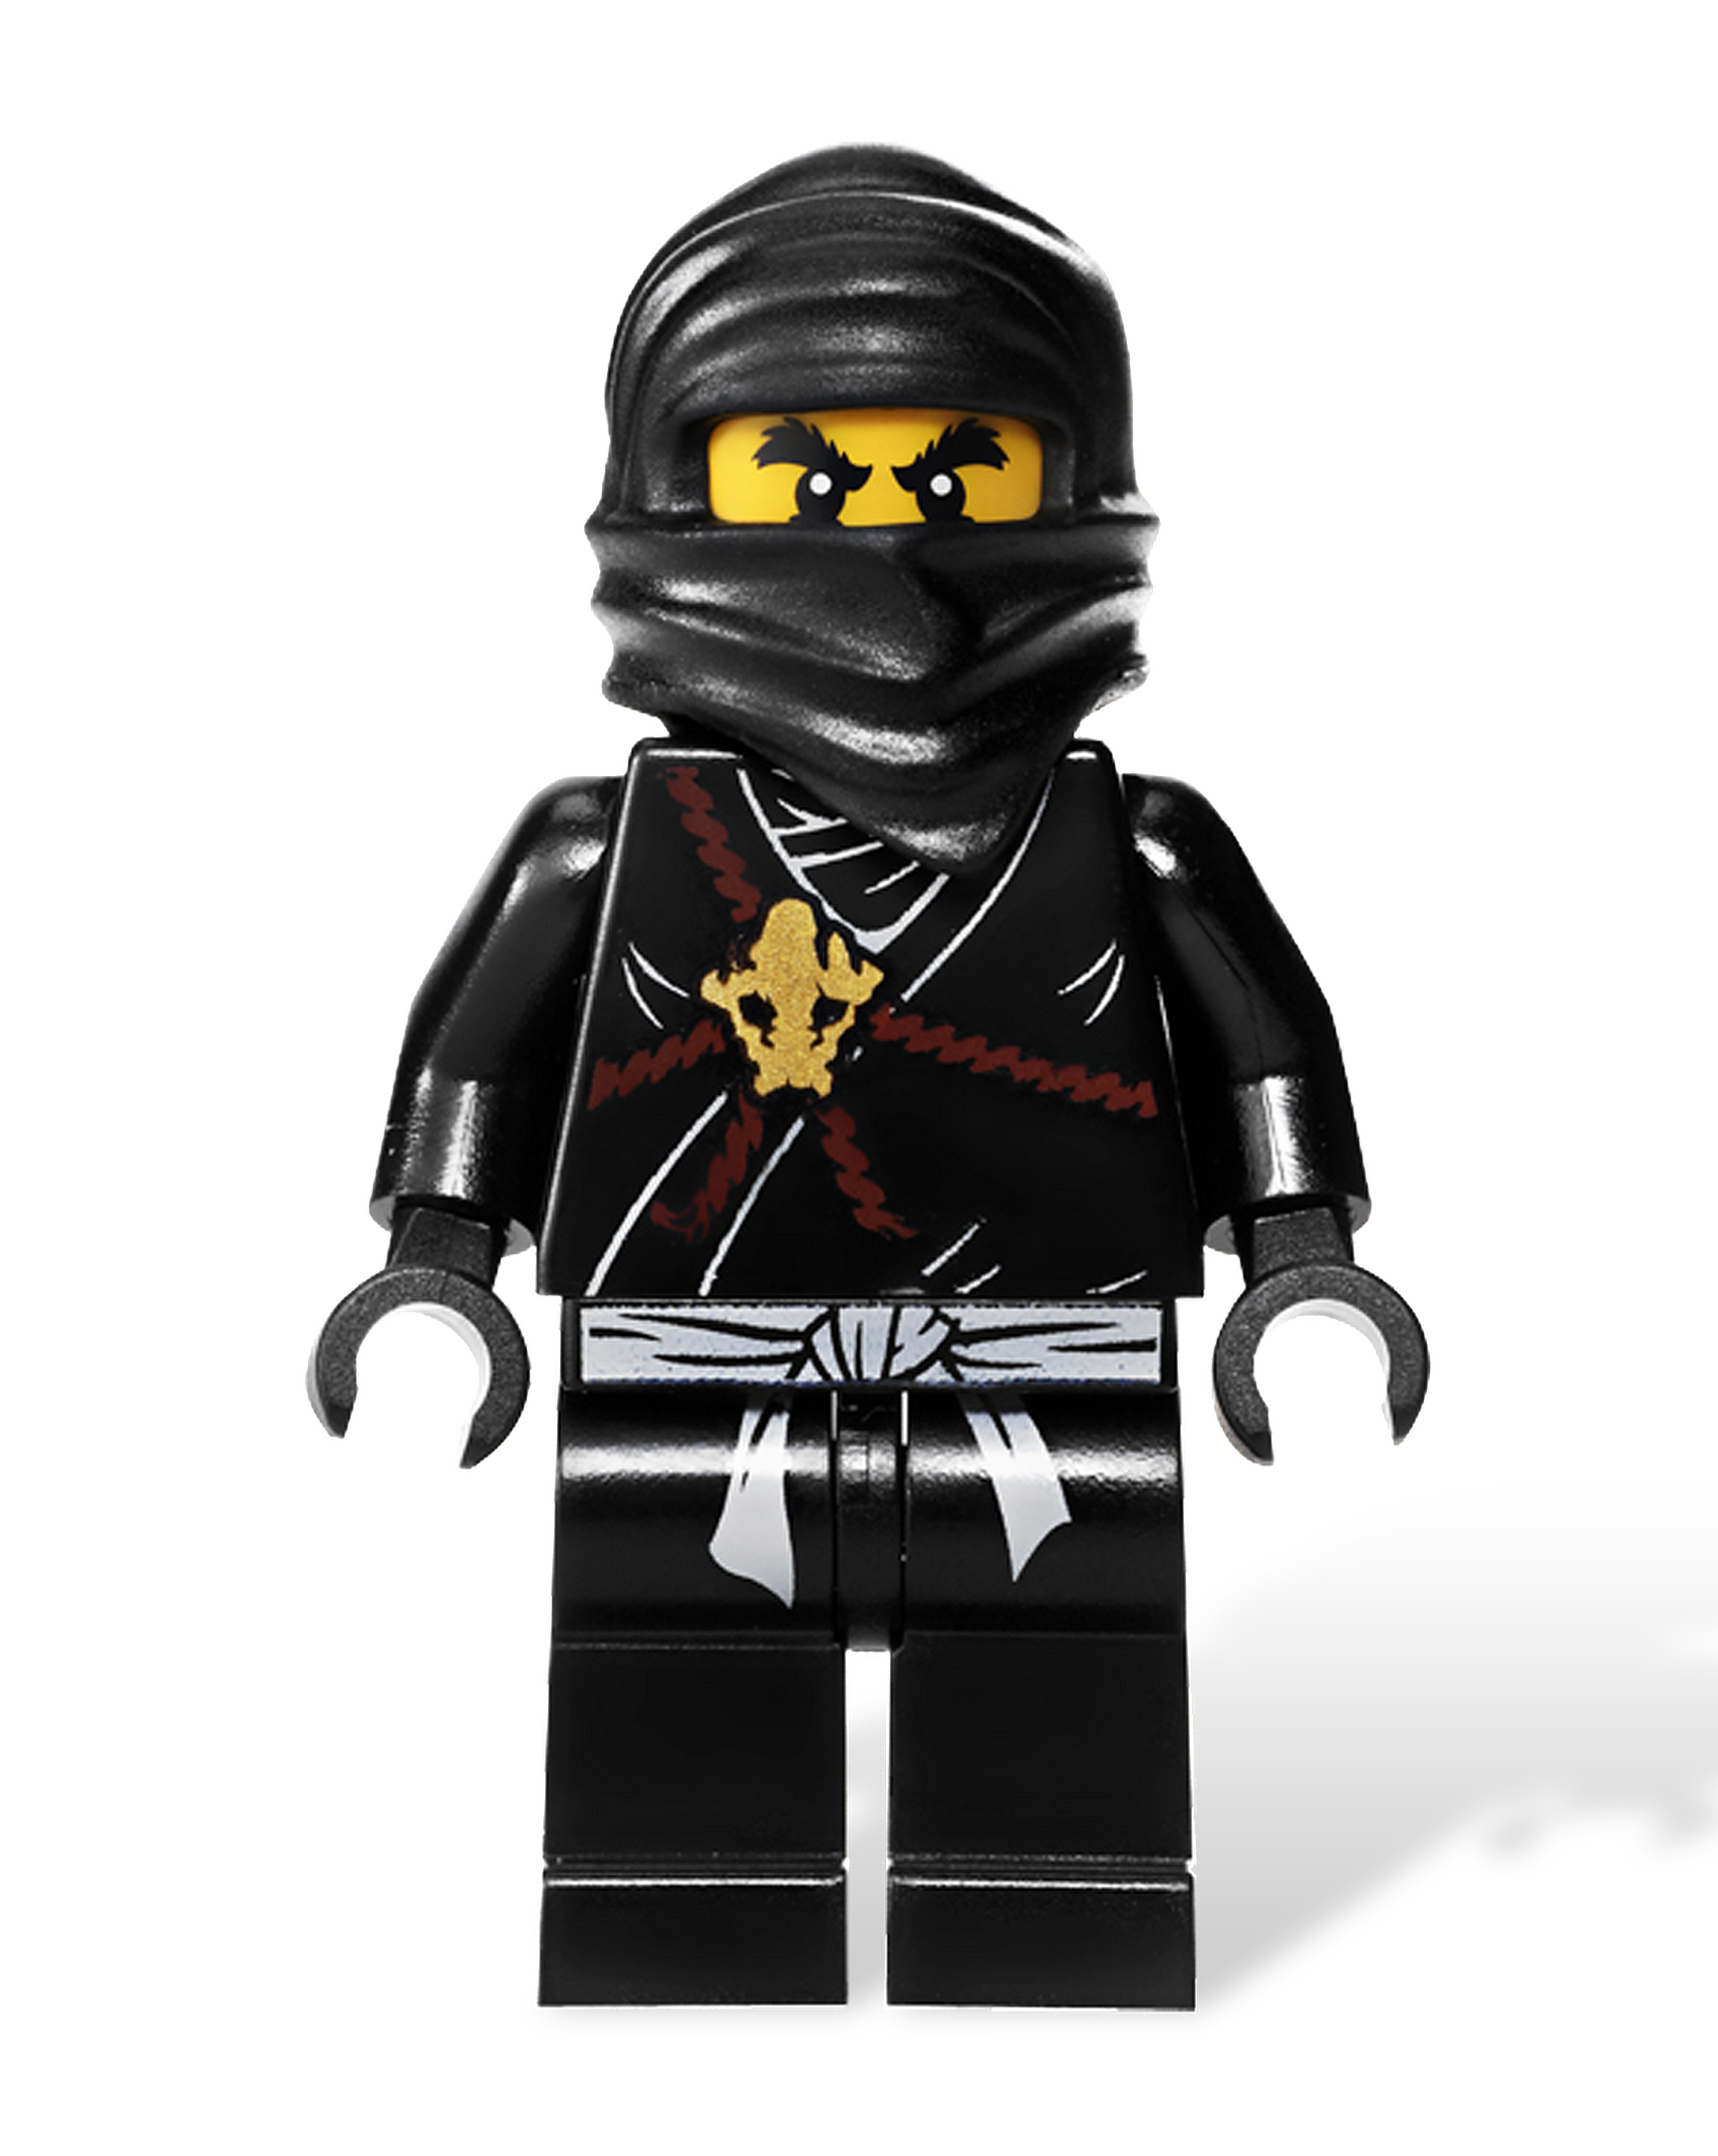 Cole brickipedia the lego wiki - Lego ninjago ninja ...